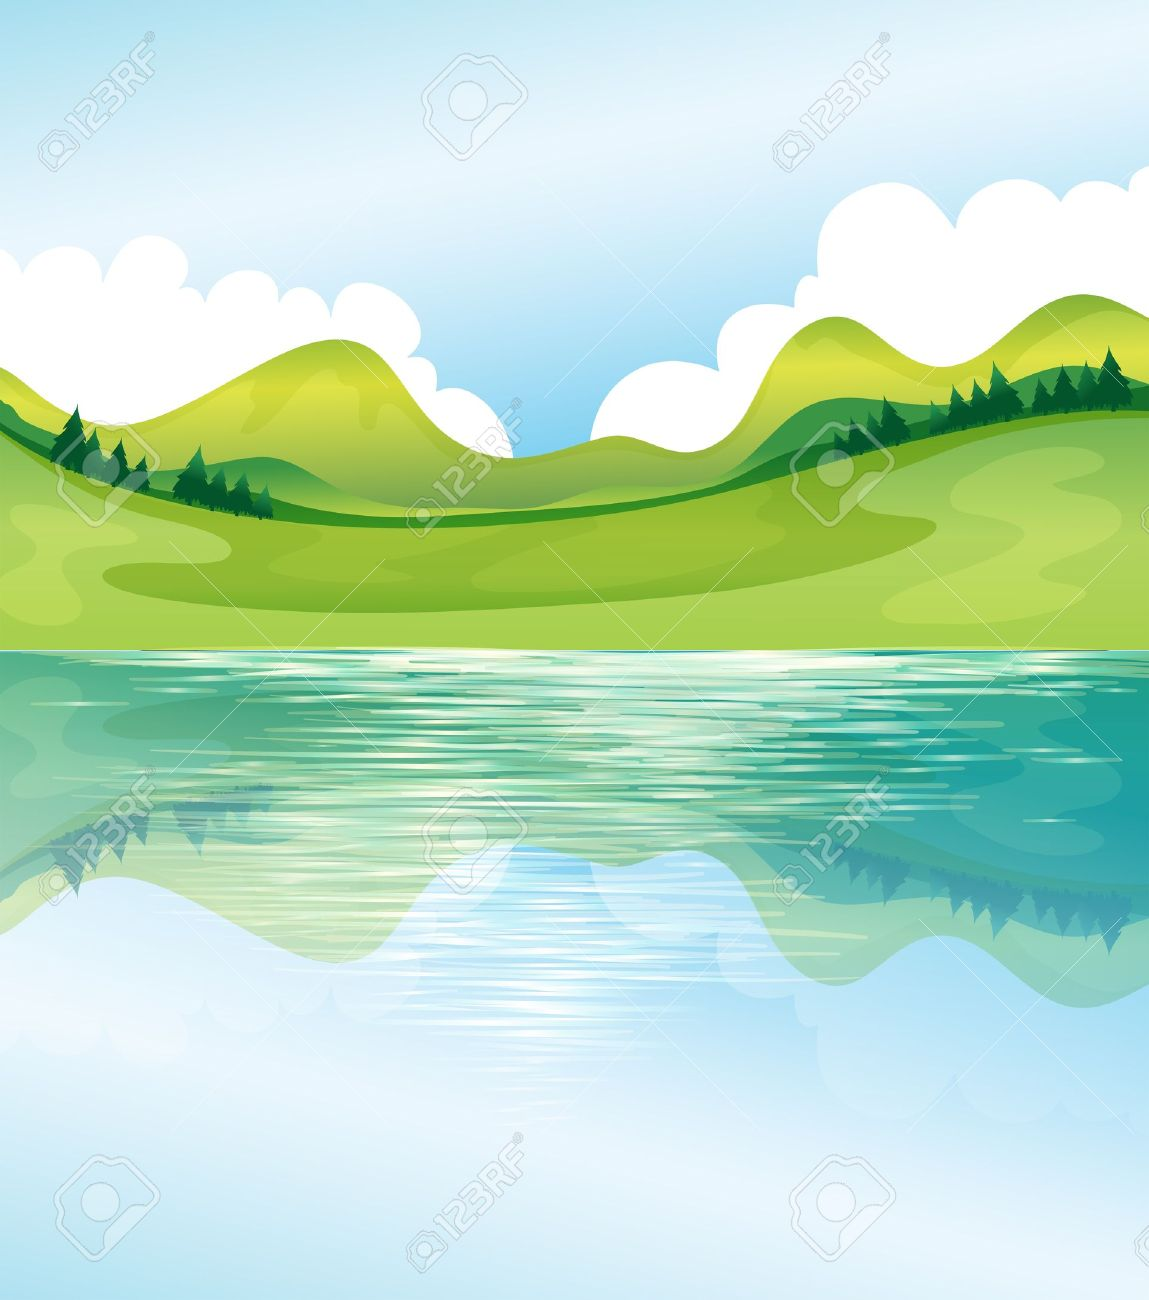 Land and sky clipart.